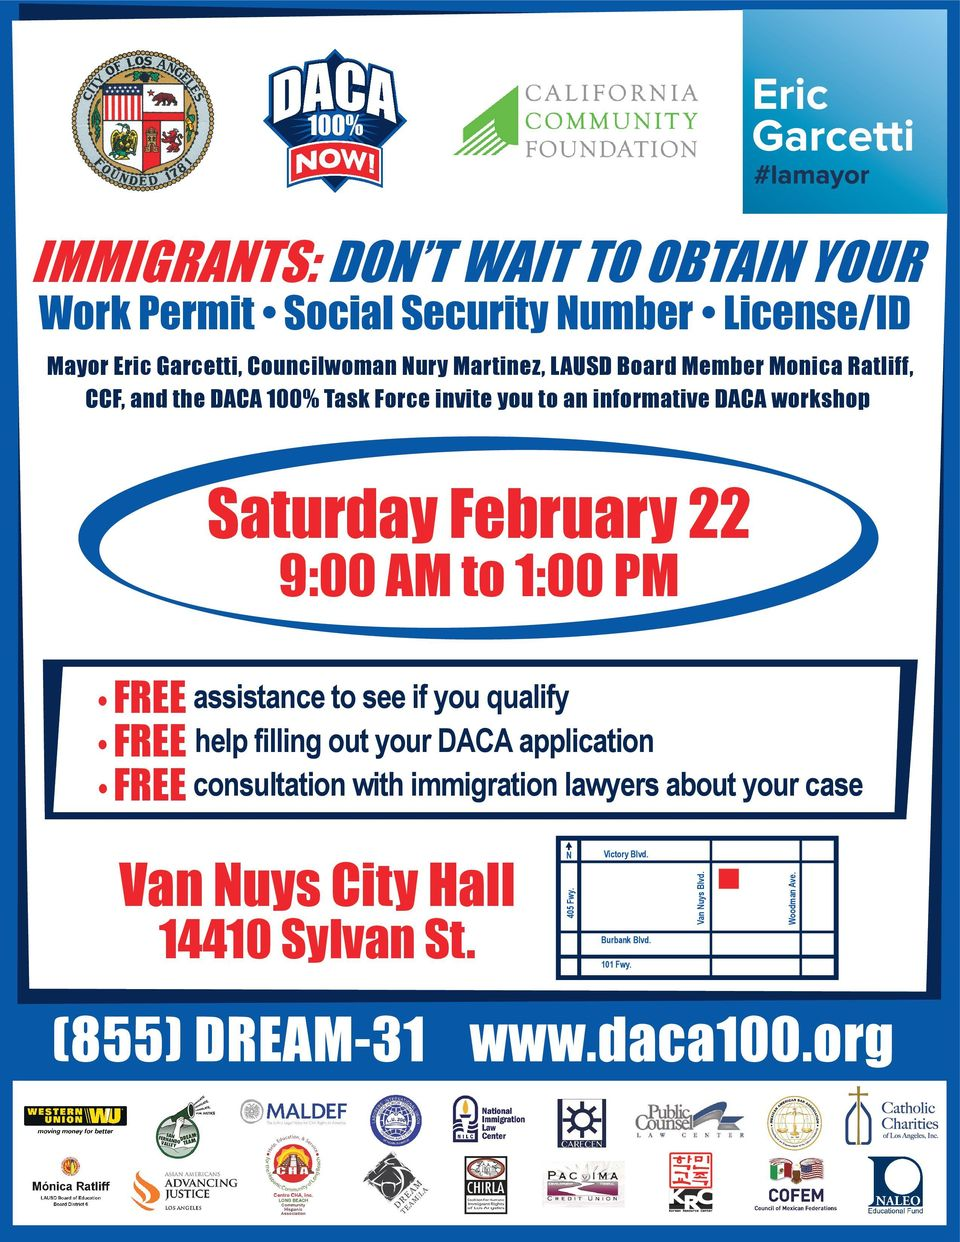 1:00 PM FREE assistance to see if you qualify FREE help filling out your DACA application FREE consultation with immigration lawyers about